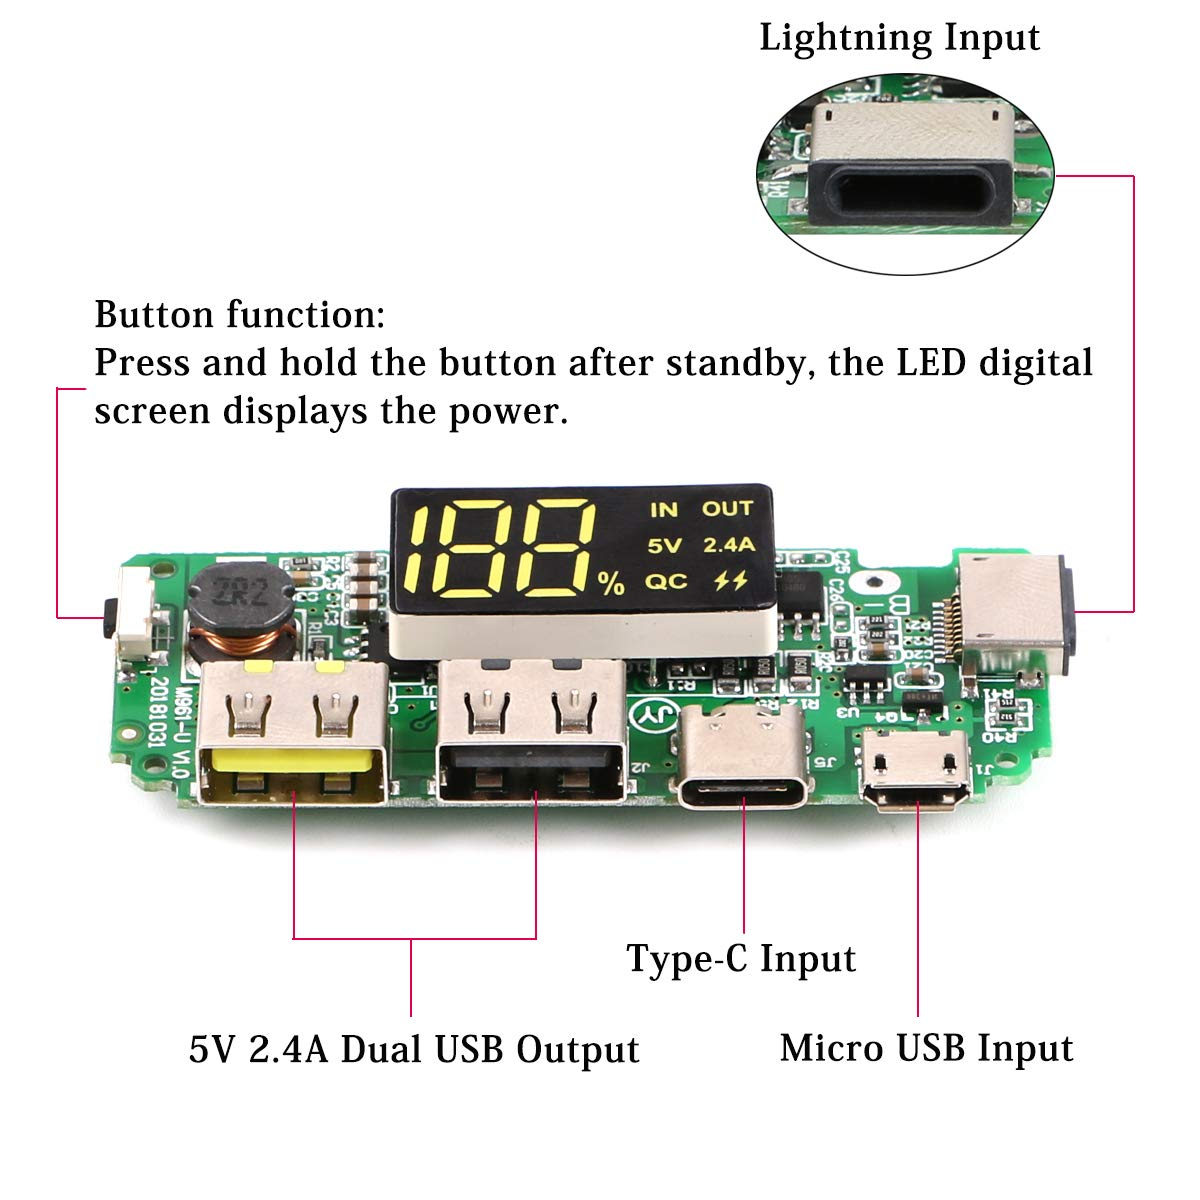 LED Dual USB 5V 2.4A Micro/for Type-C/ for Lightning USB Power Bank 18650 Charger Board Overcharge Overdischarge Short Circuit Protection green